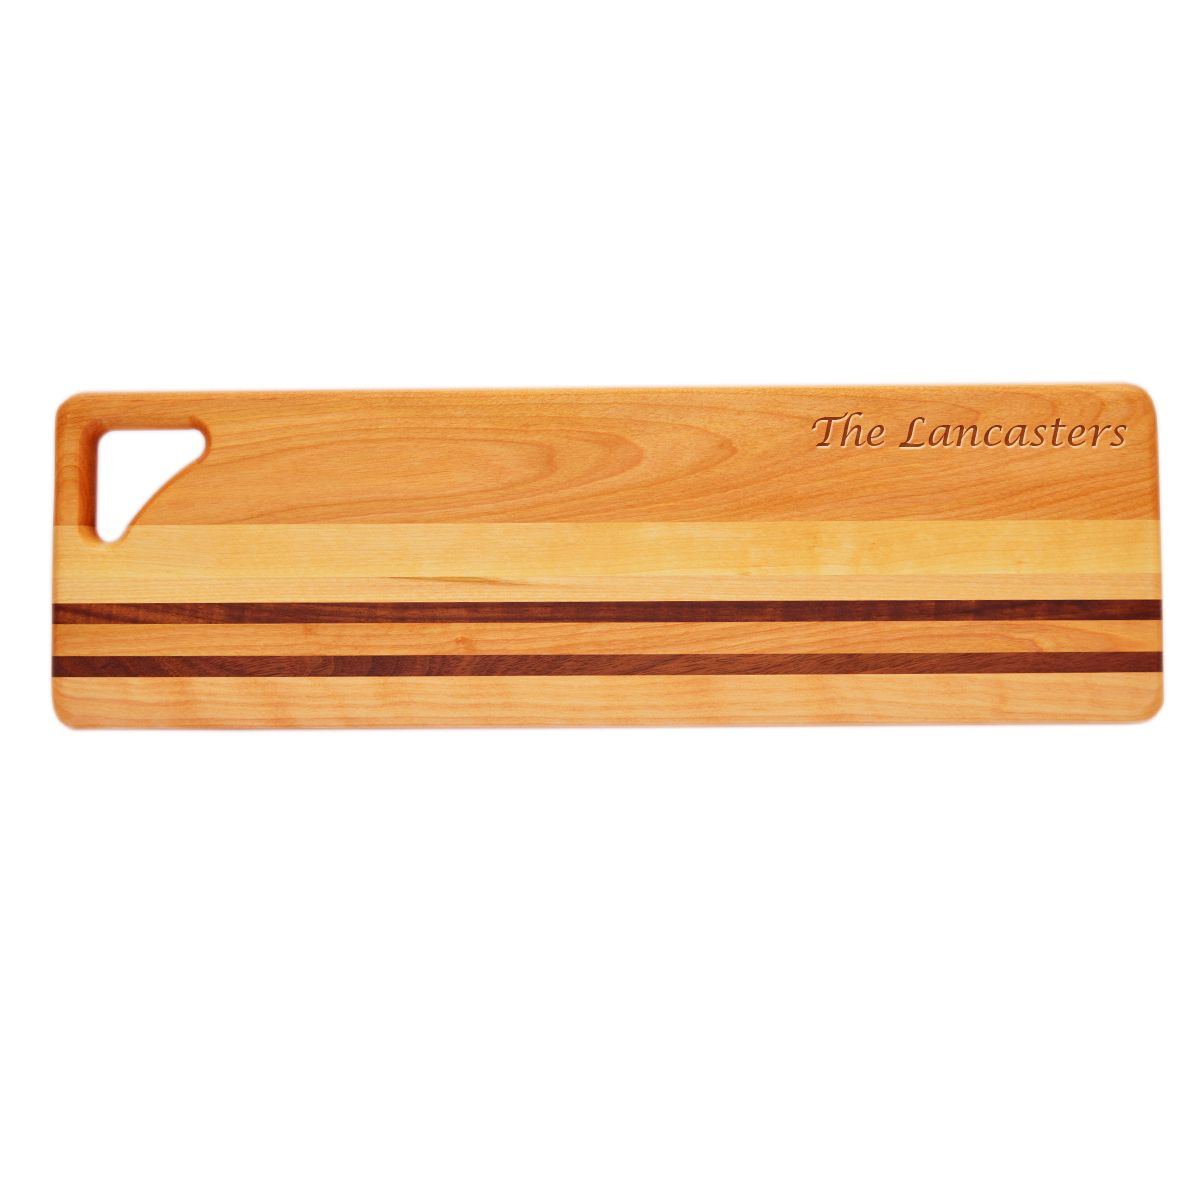 "The Carved Solutions Integrity Long Cutting Board measures 20"" x 6"" x 3/4"" (Ship Weight 3lbs) It is fun to see customers look and handle the Long Board. Watching closely you can see the visions of a long baguette of French Bread or an obliquely sliced sausage or a selection of canapes come in to their minds eye. A board which serves tasks ranging from the cutting of celery and cucumber to the realization of those first visions."